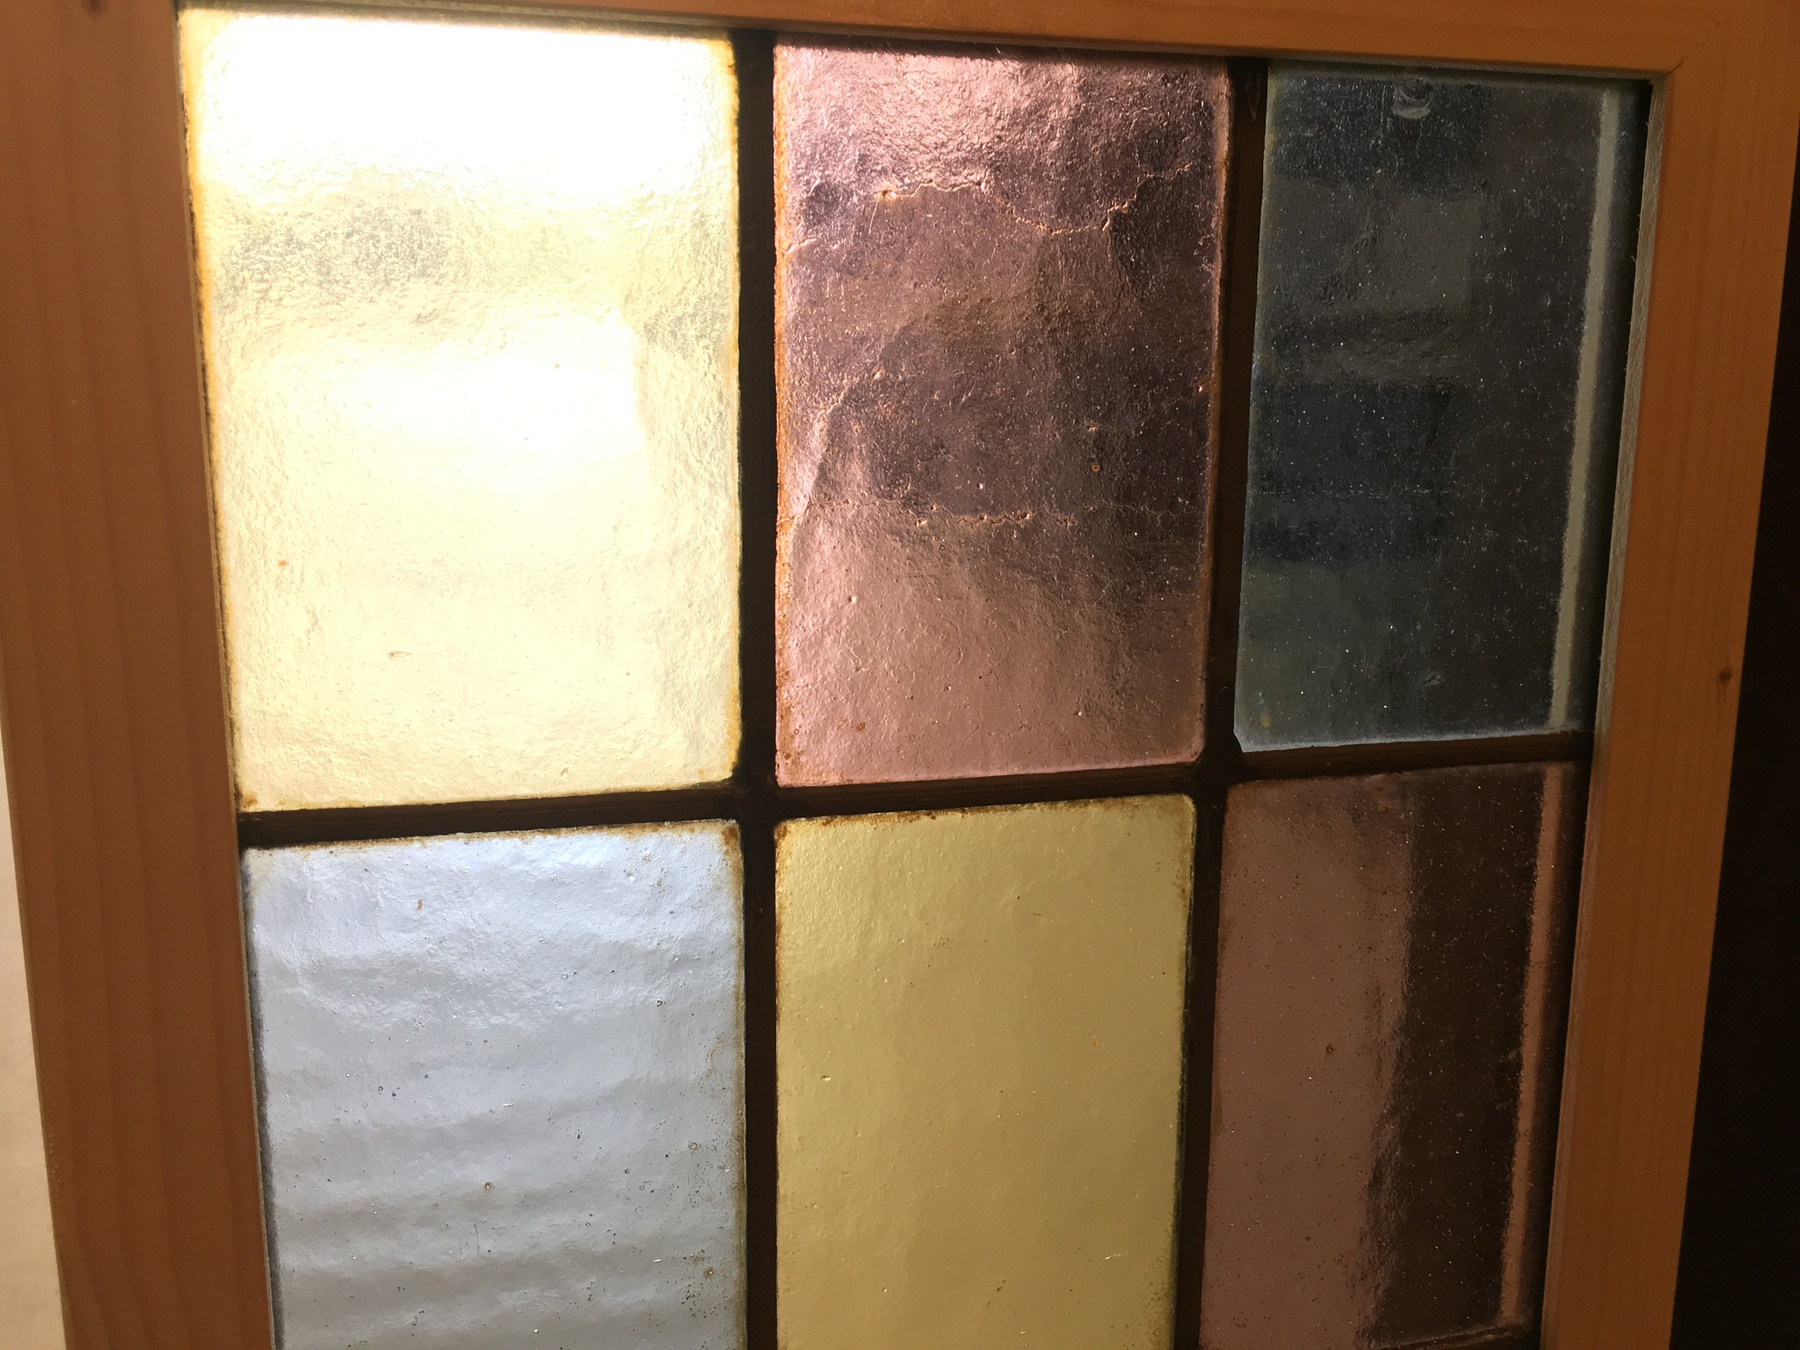 stained190830b_02.JPG